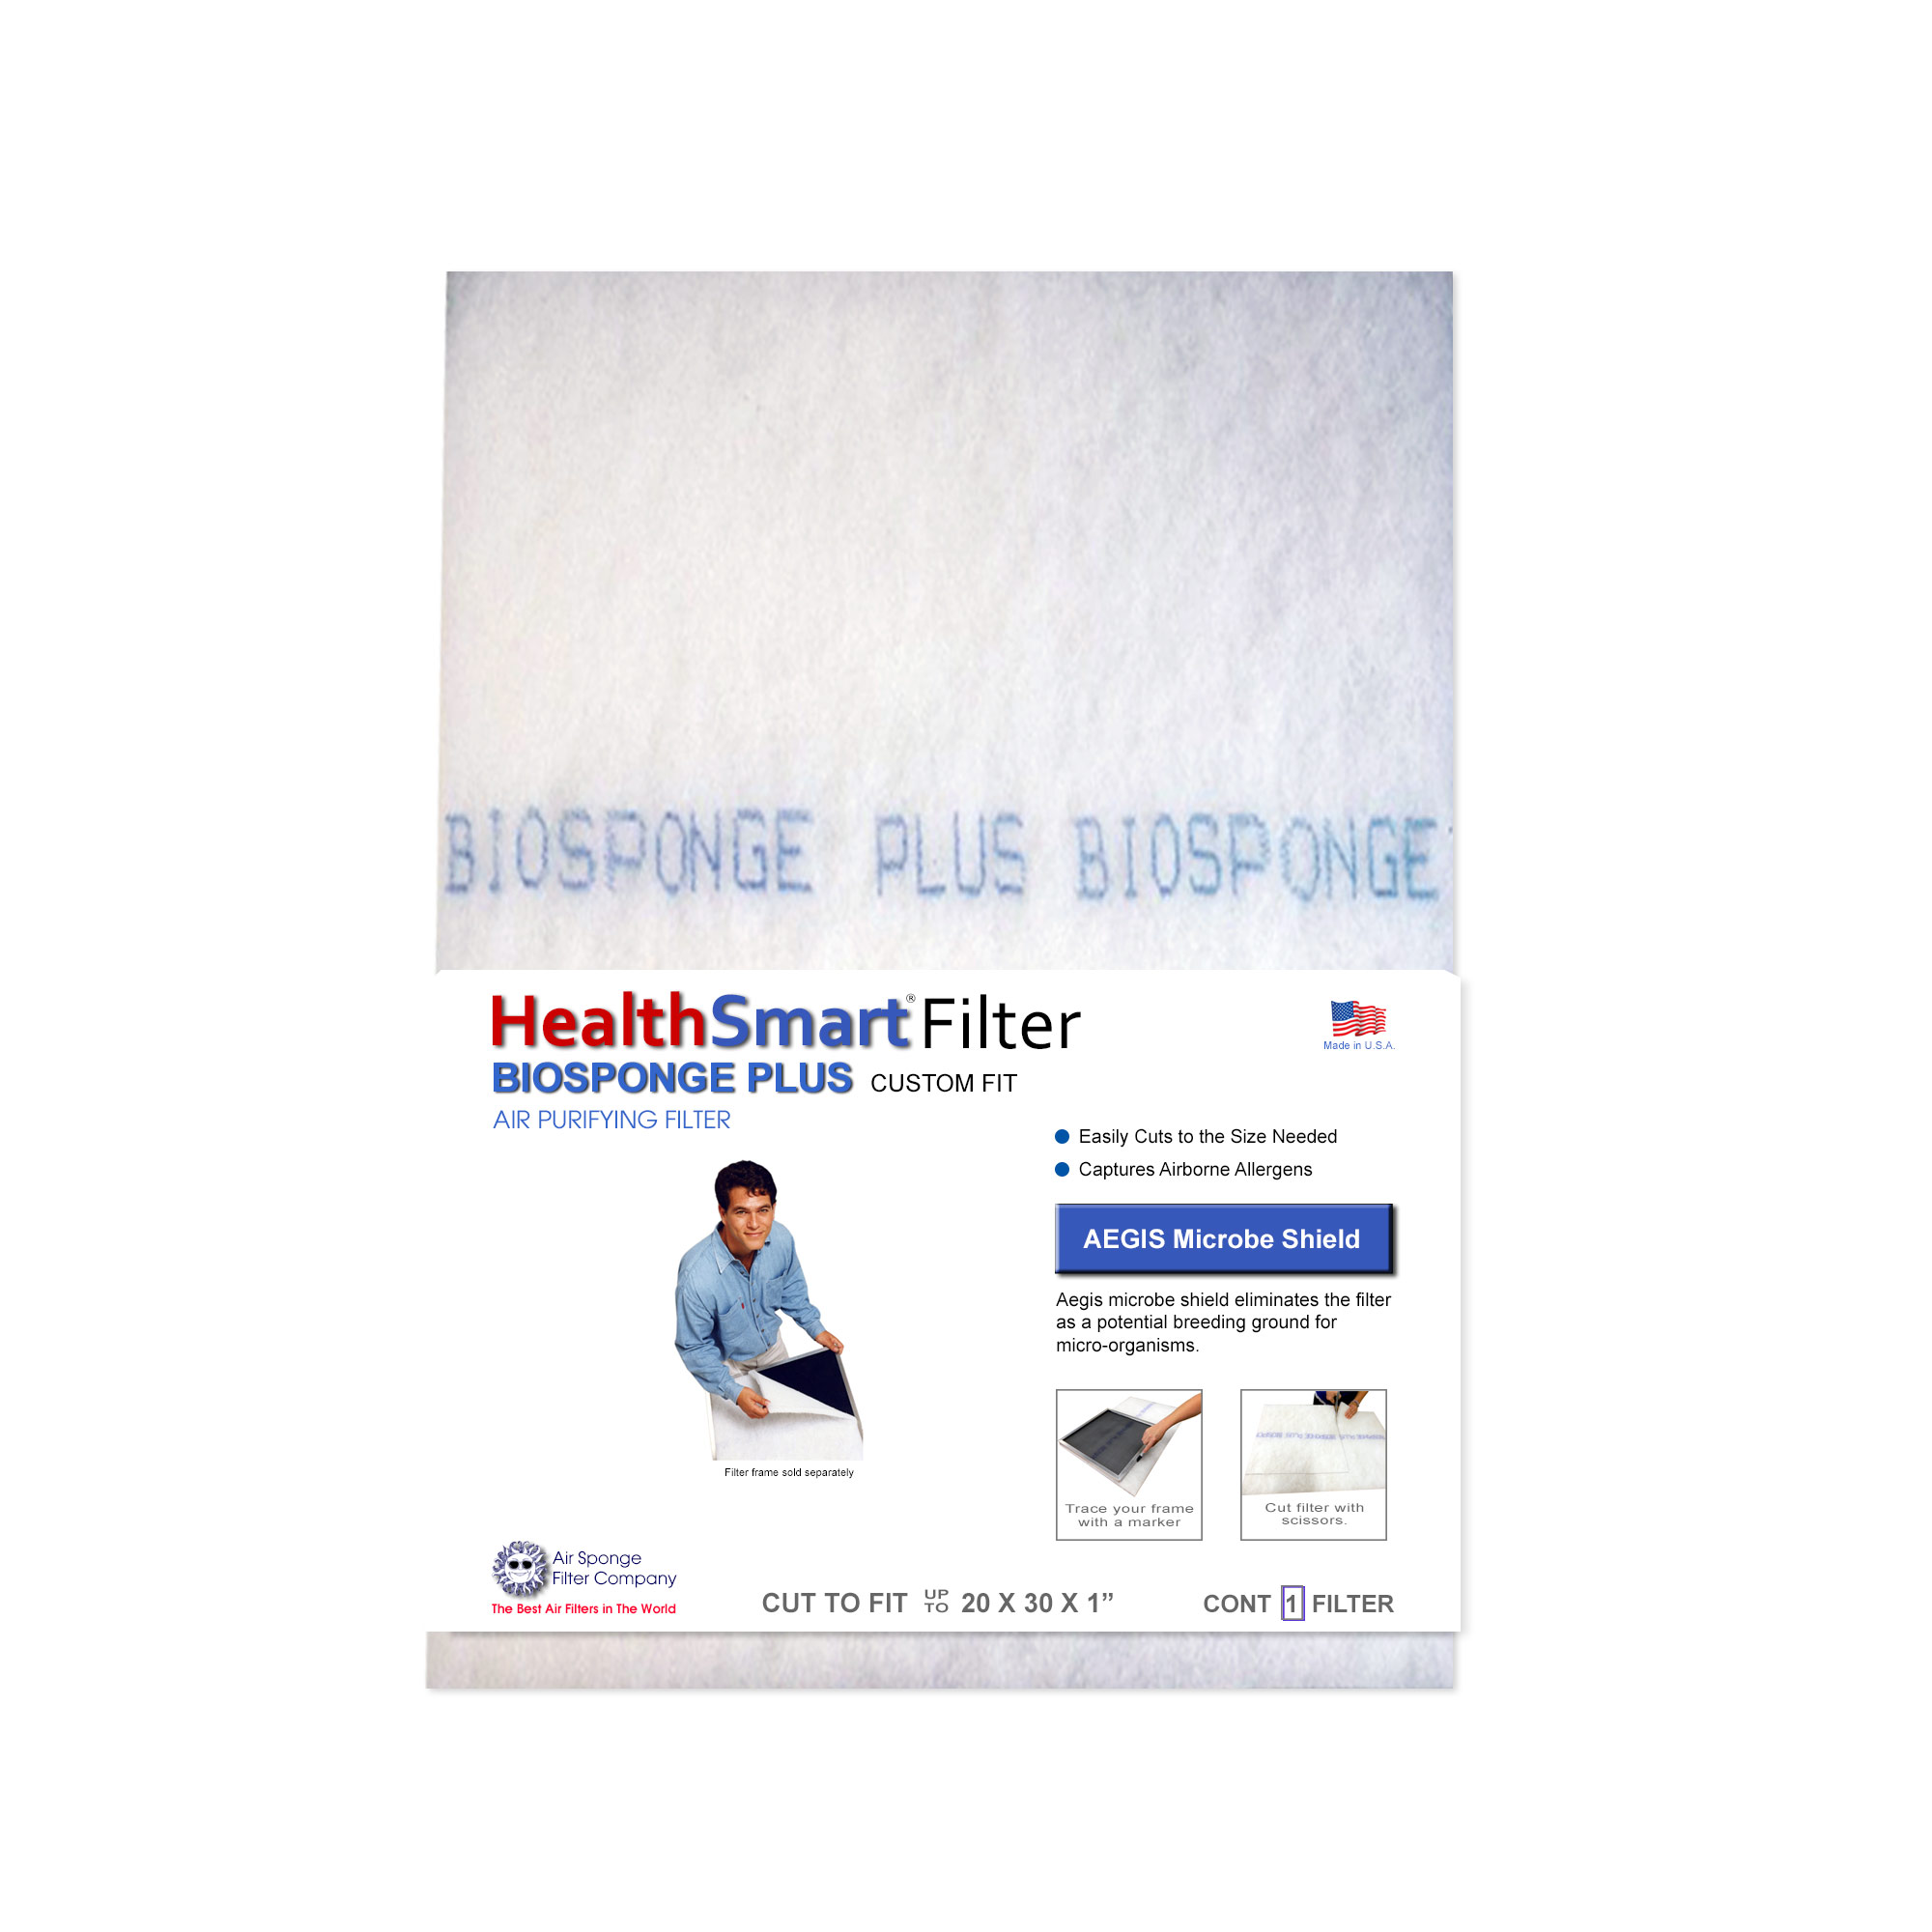 "Biosponge Plus Replacement Pad - Cut To Fit (20 x 30 x 1"" Max) for HealthSmart AC, Furnace Filter System"